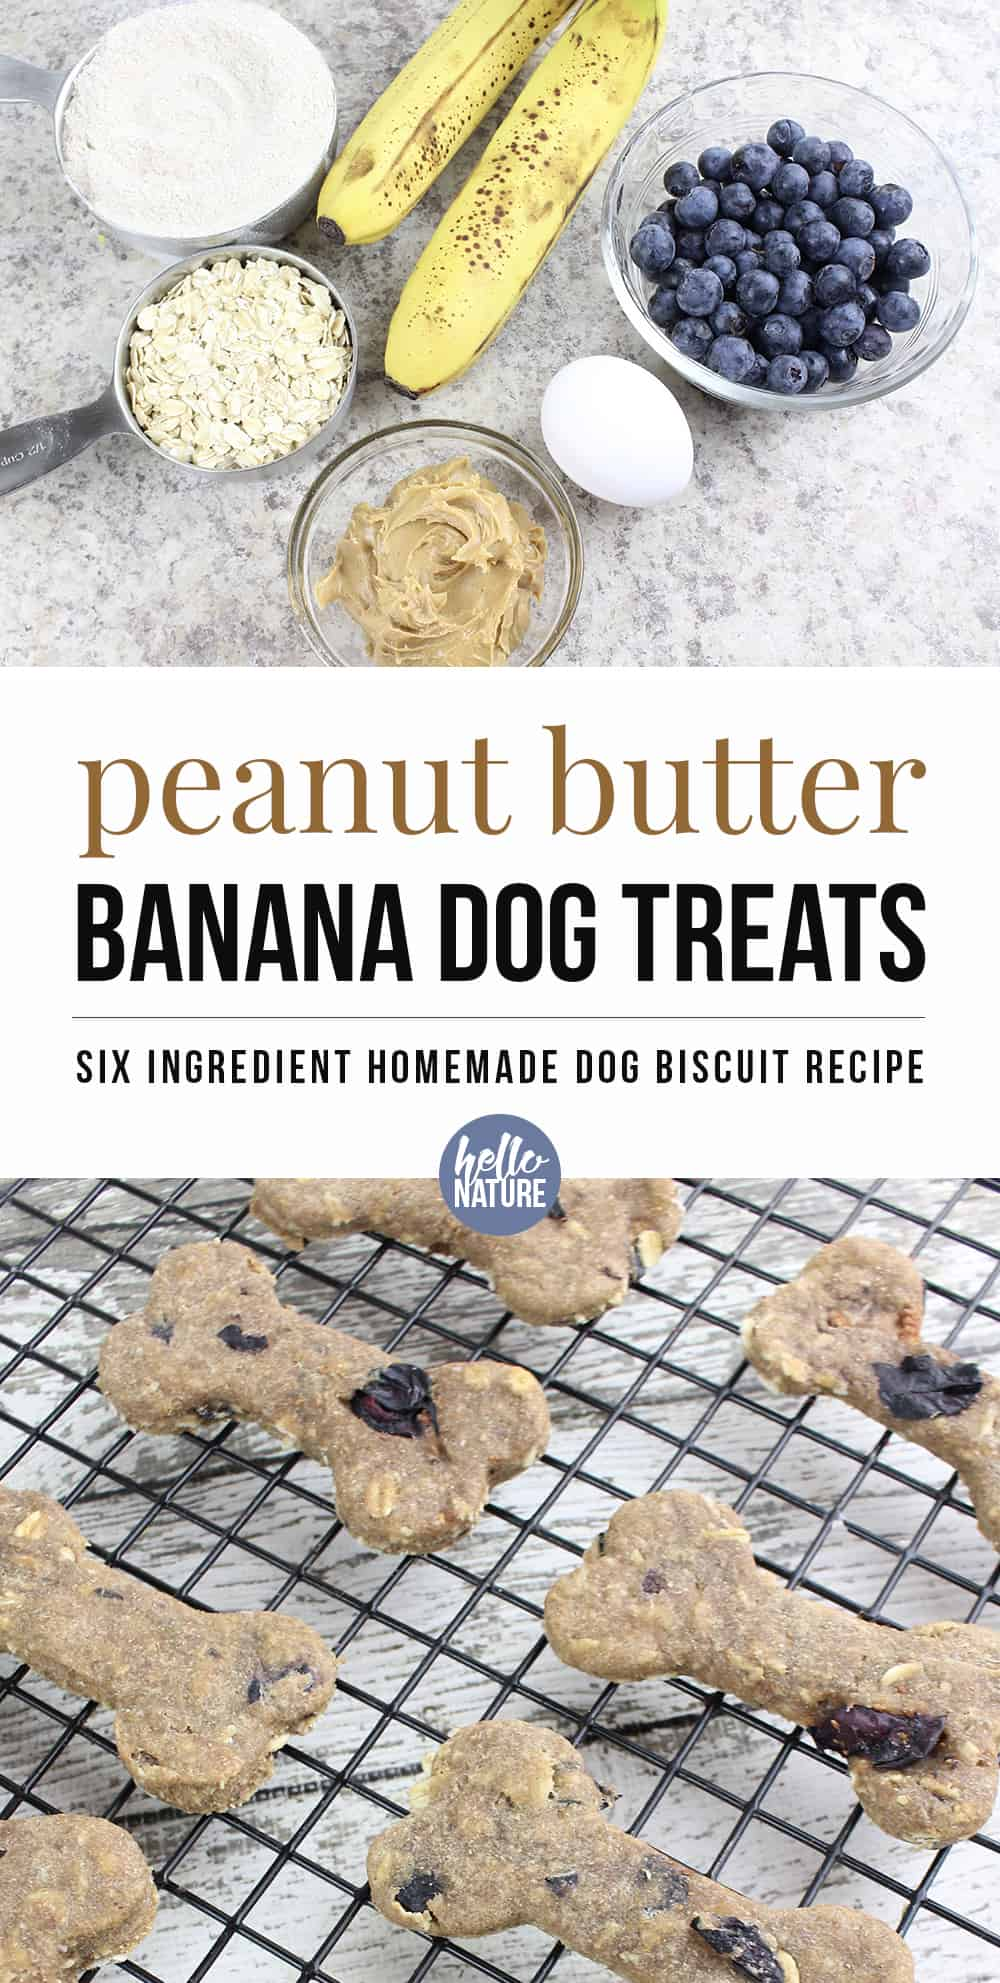 These Peanut Butter Banana Dog Treats are super easy dog treats that you can make at home!